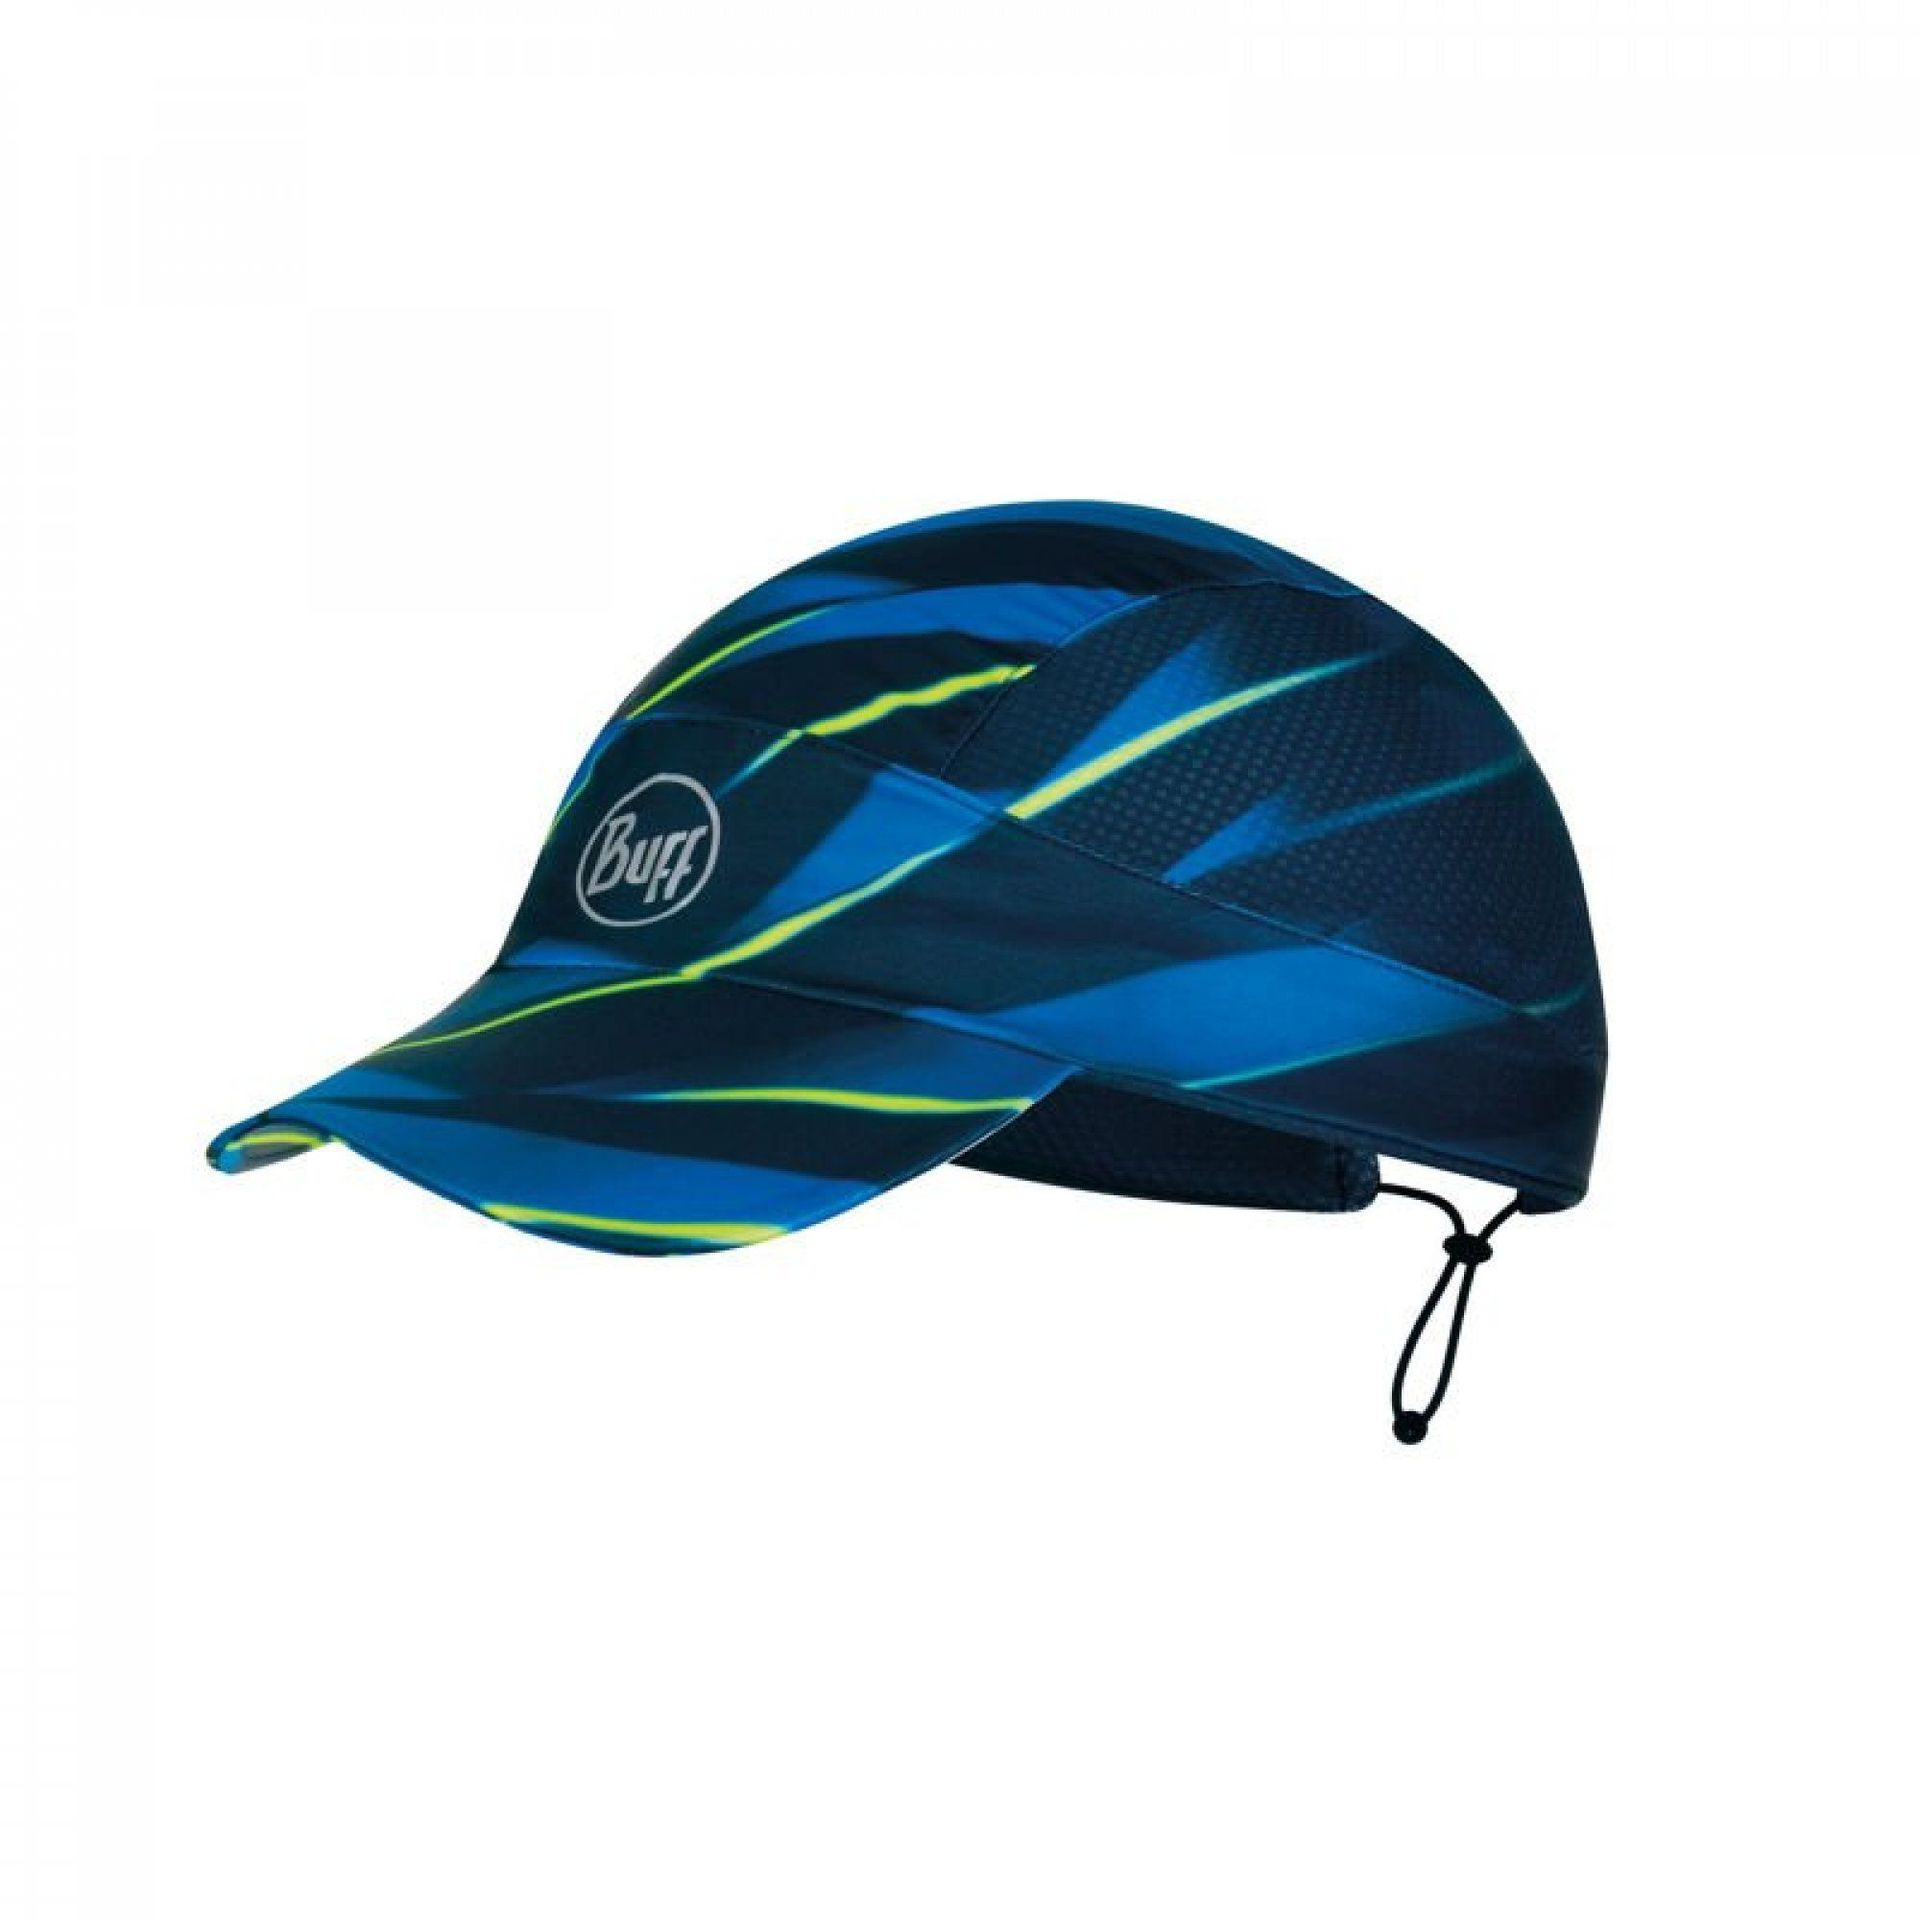 PACK RUN CAP R-FOCUS BLUE 1